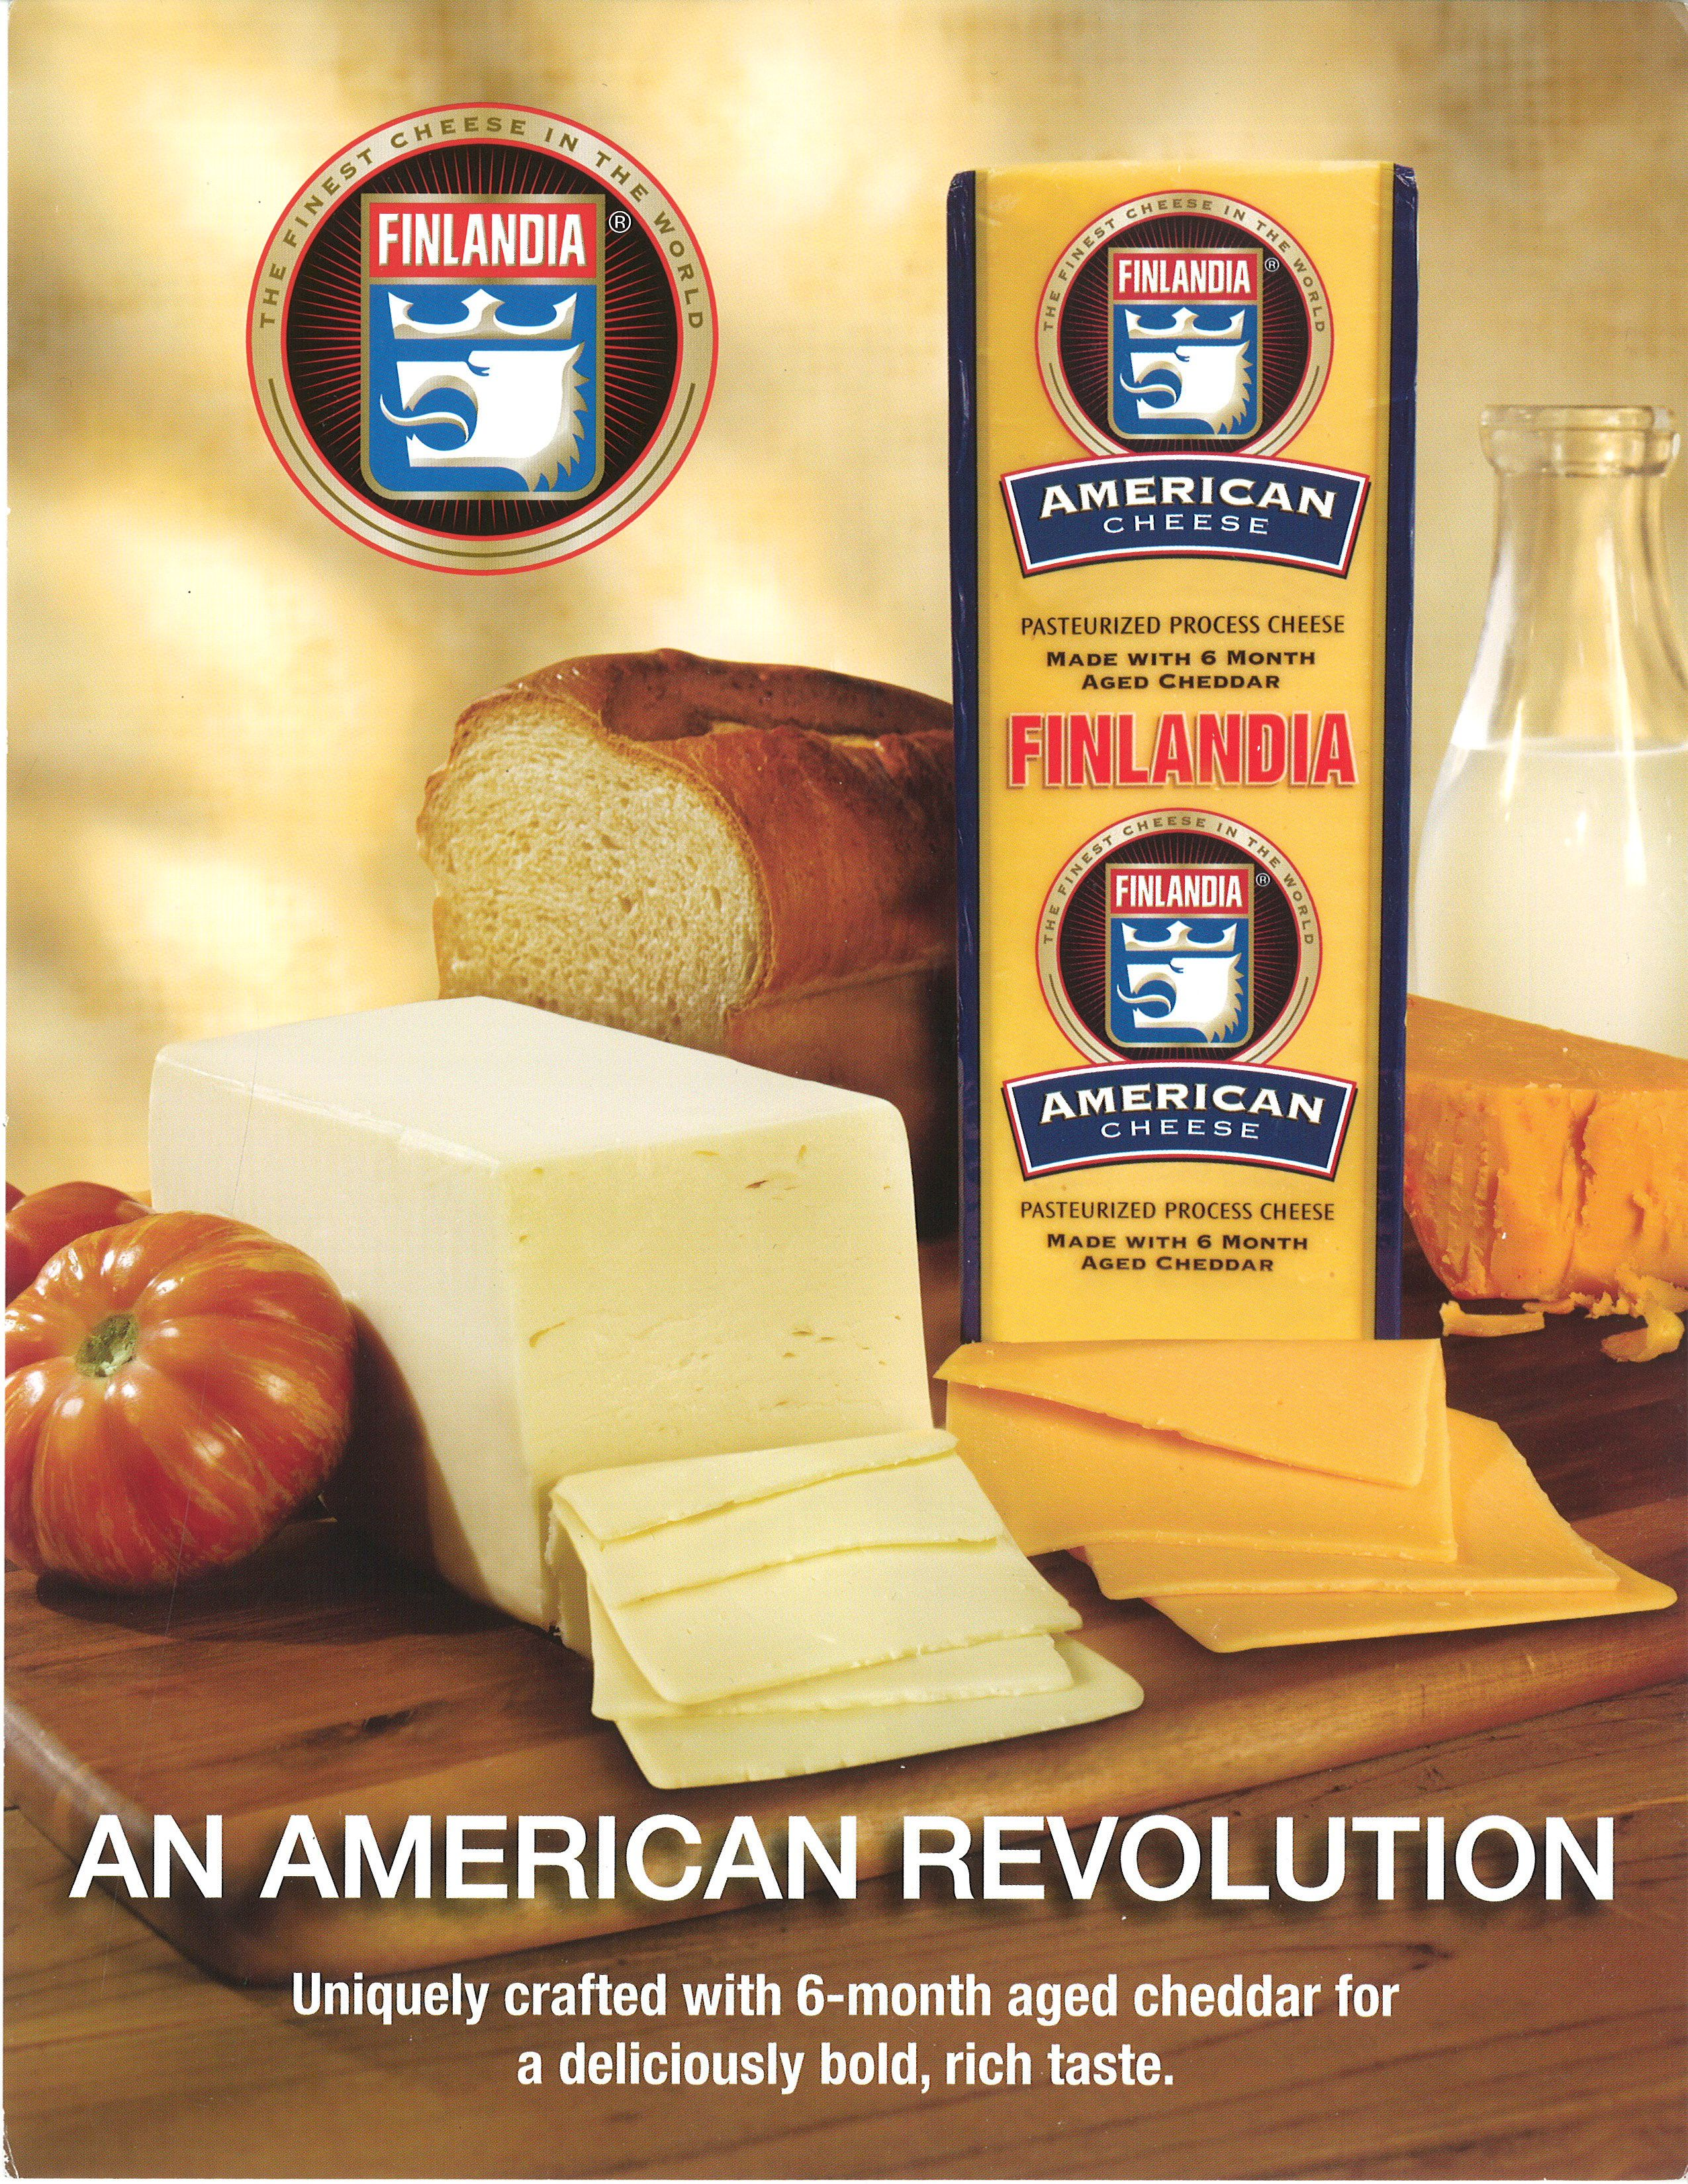 Finlandia 5 Loaf American Cheese American Cheese How To Make Cheese